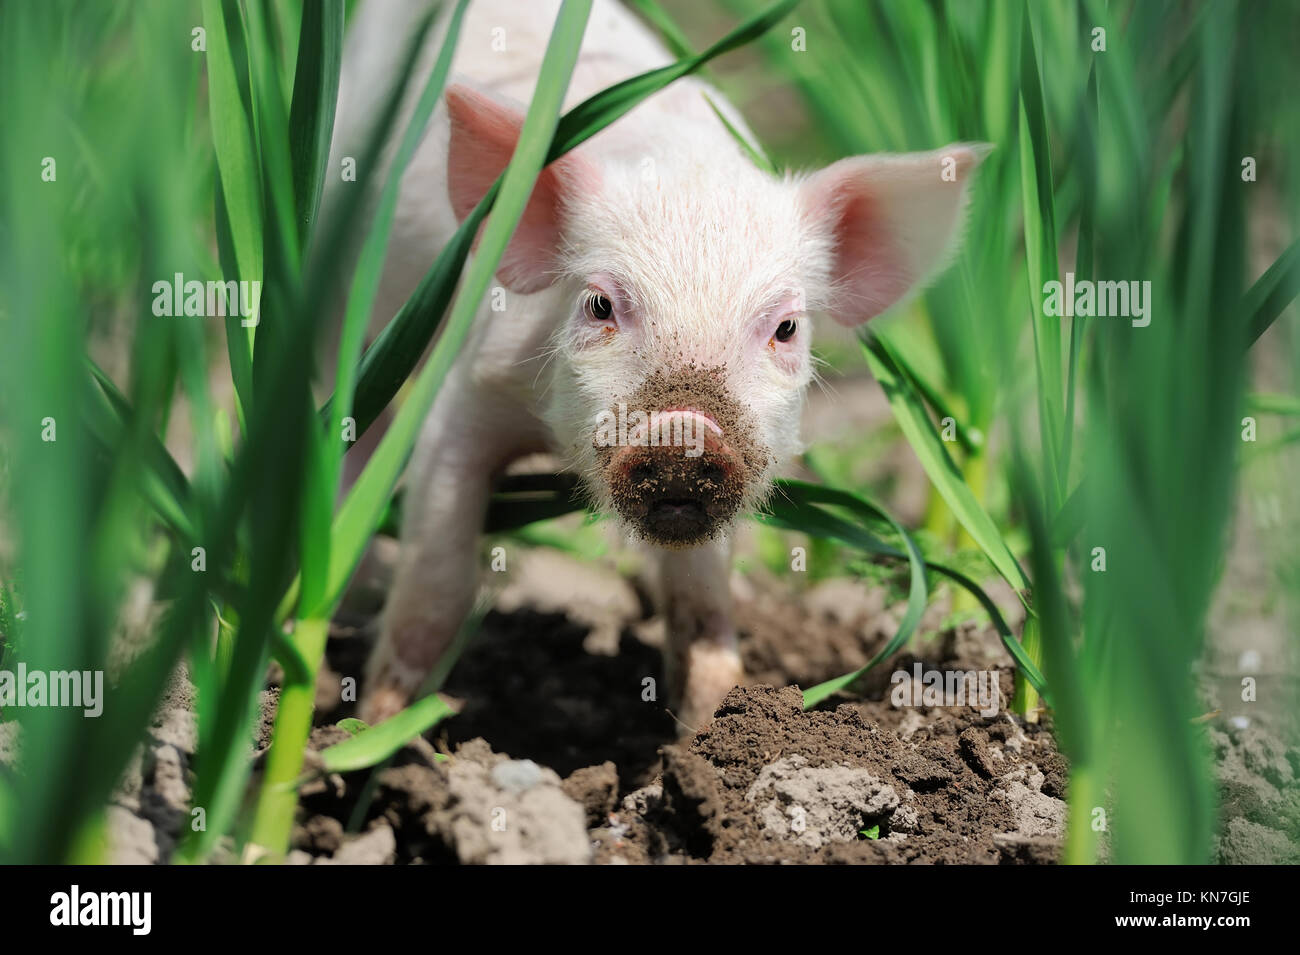 Piglet on spring green grass on a farm - Stock Image